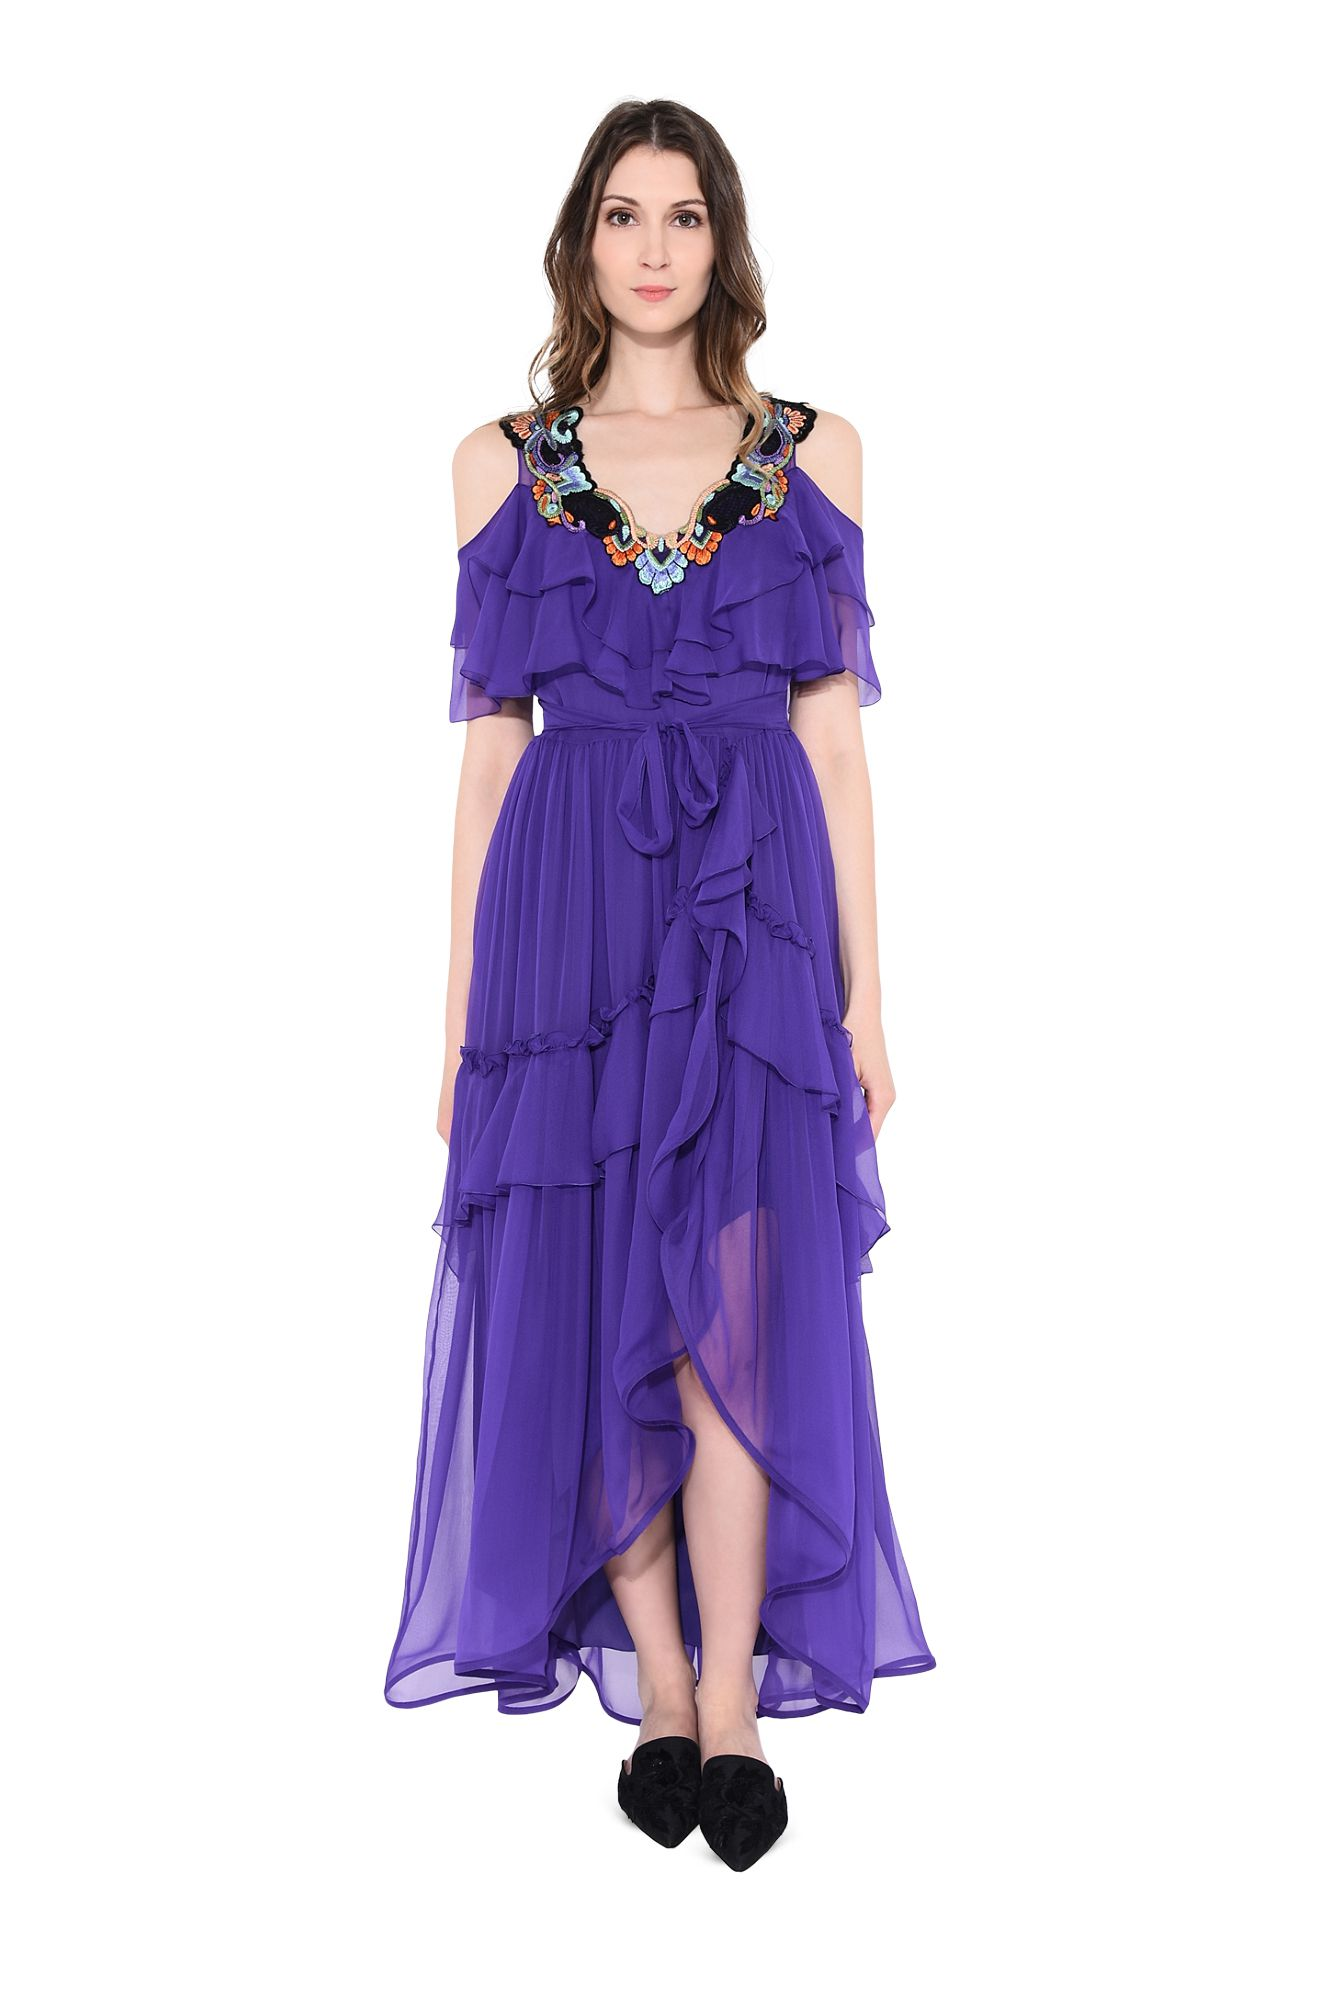 EXÒTICO PURPLE DRESS oppure EXOTIC FLOWER PURPLE DRESS